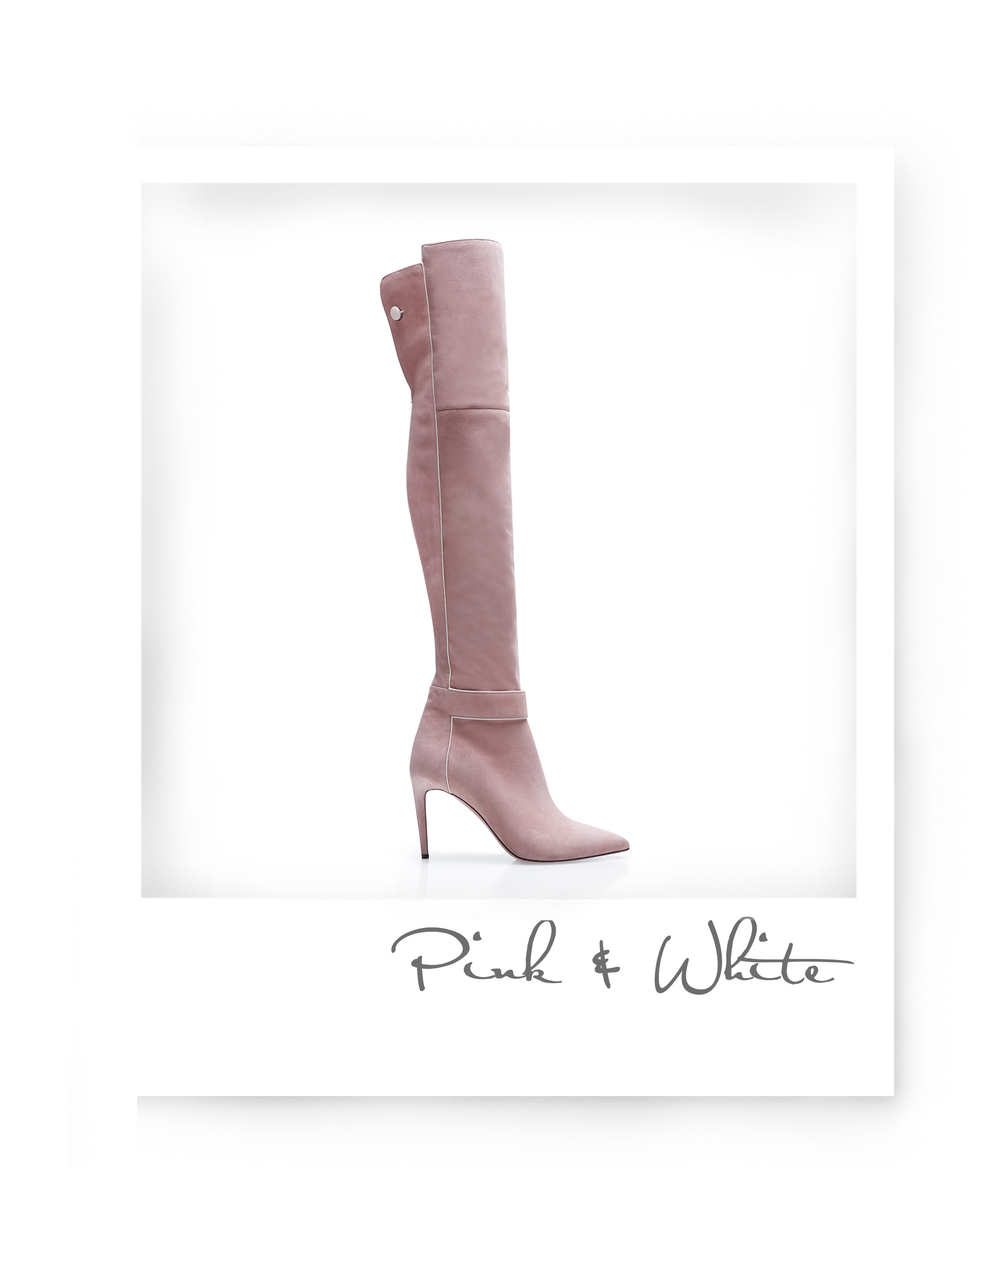 Pink and white.jpg